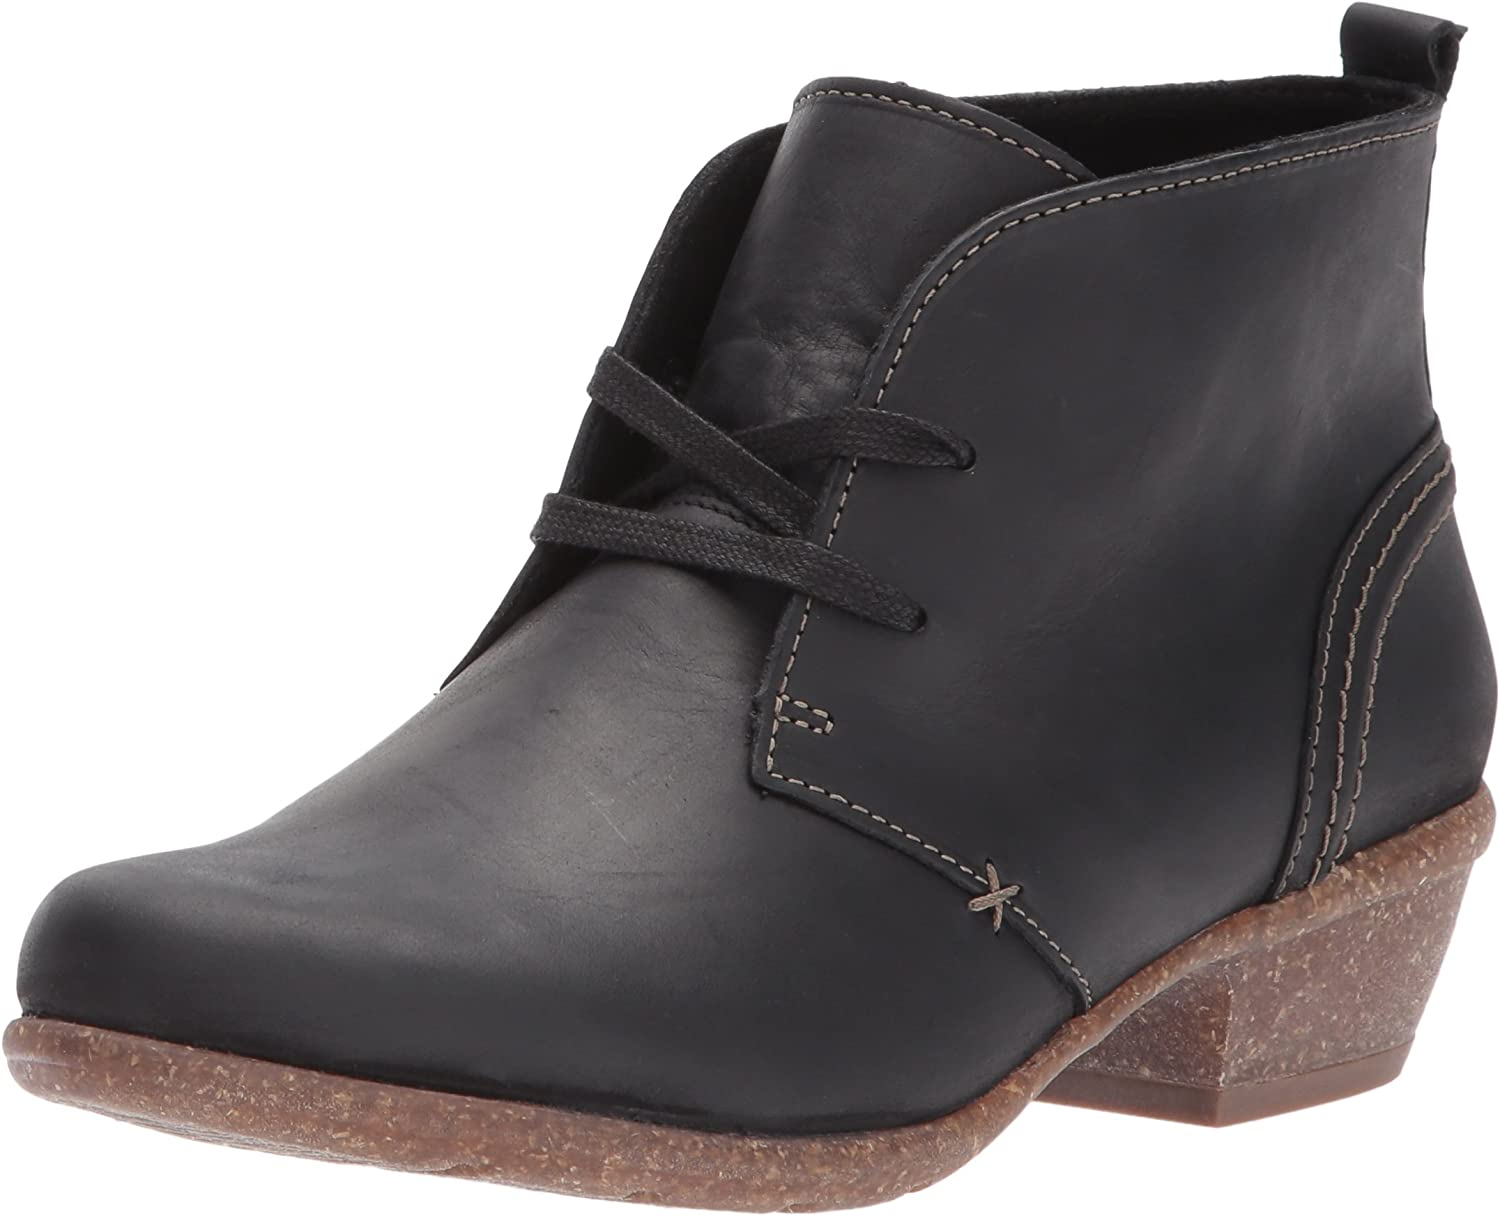 Clarks Women's Wilpink Sage Ankle Boot